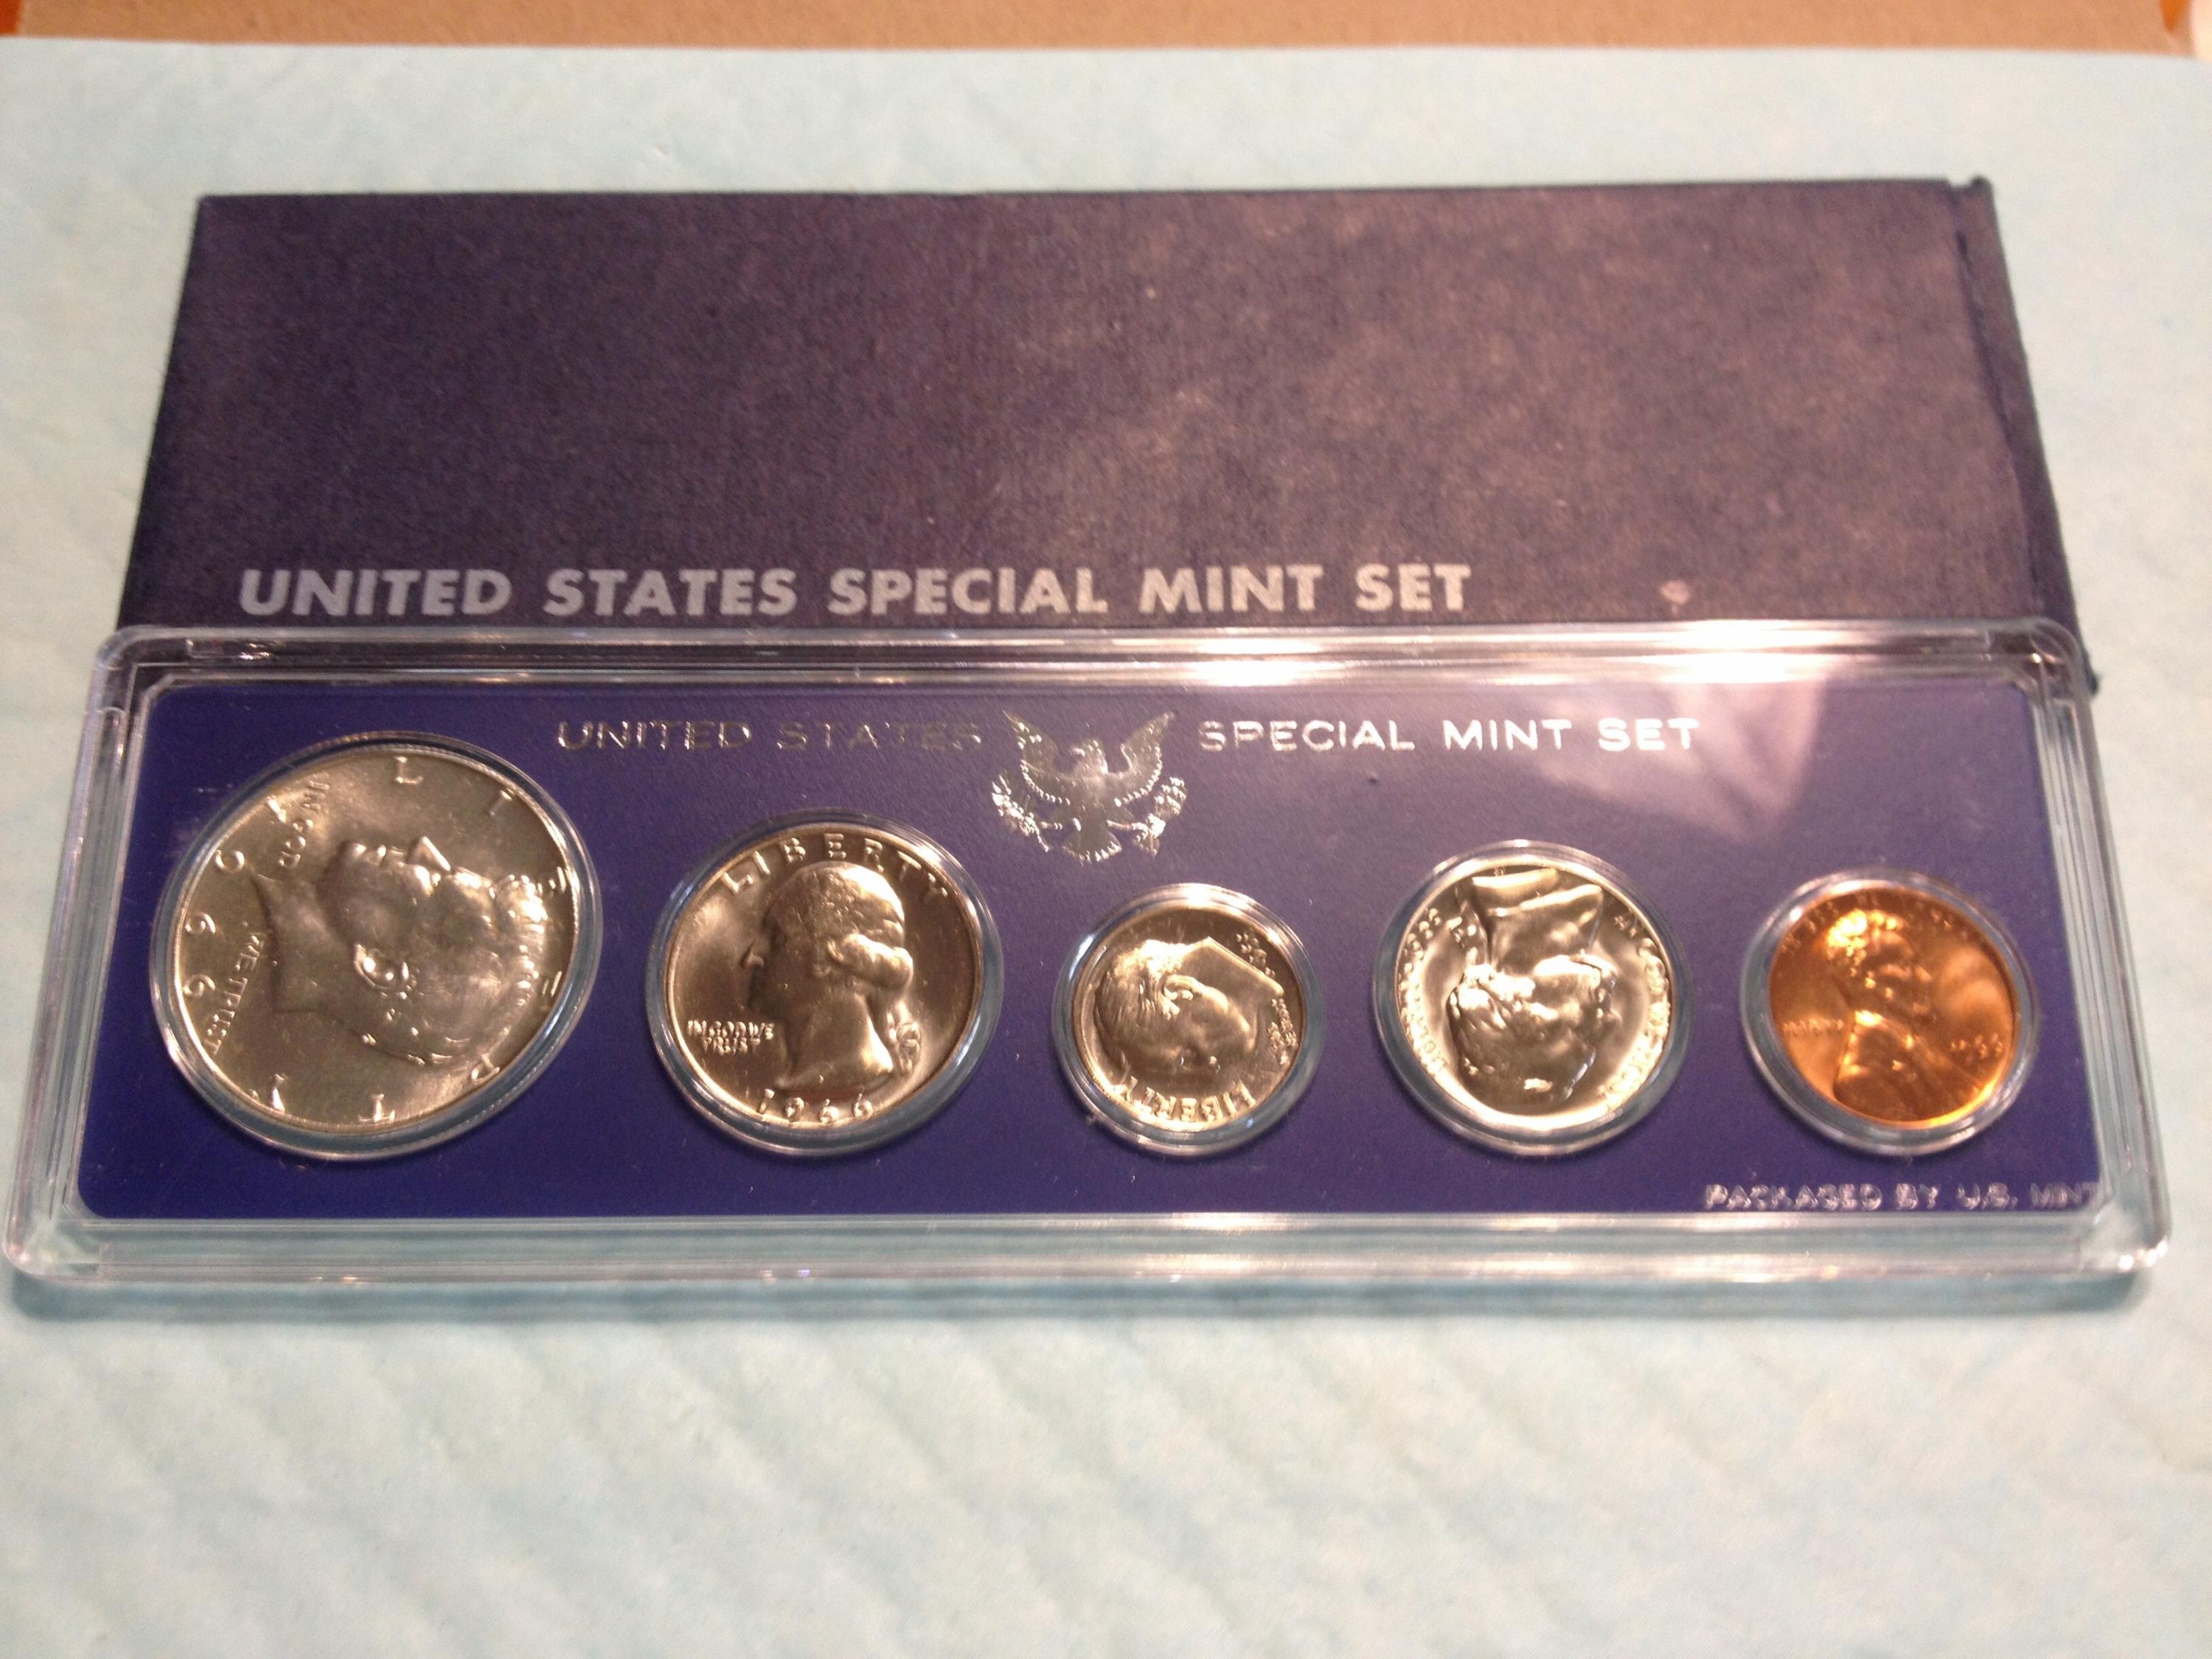 Mint Set 1966 Sms Special Mint Set Item 4a Uncirculated In Mint Boxes Proof Like Finishe